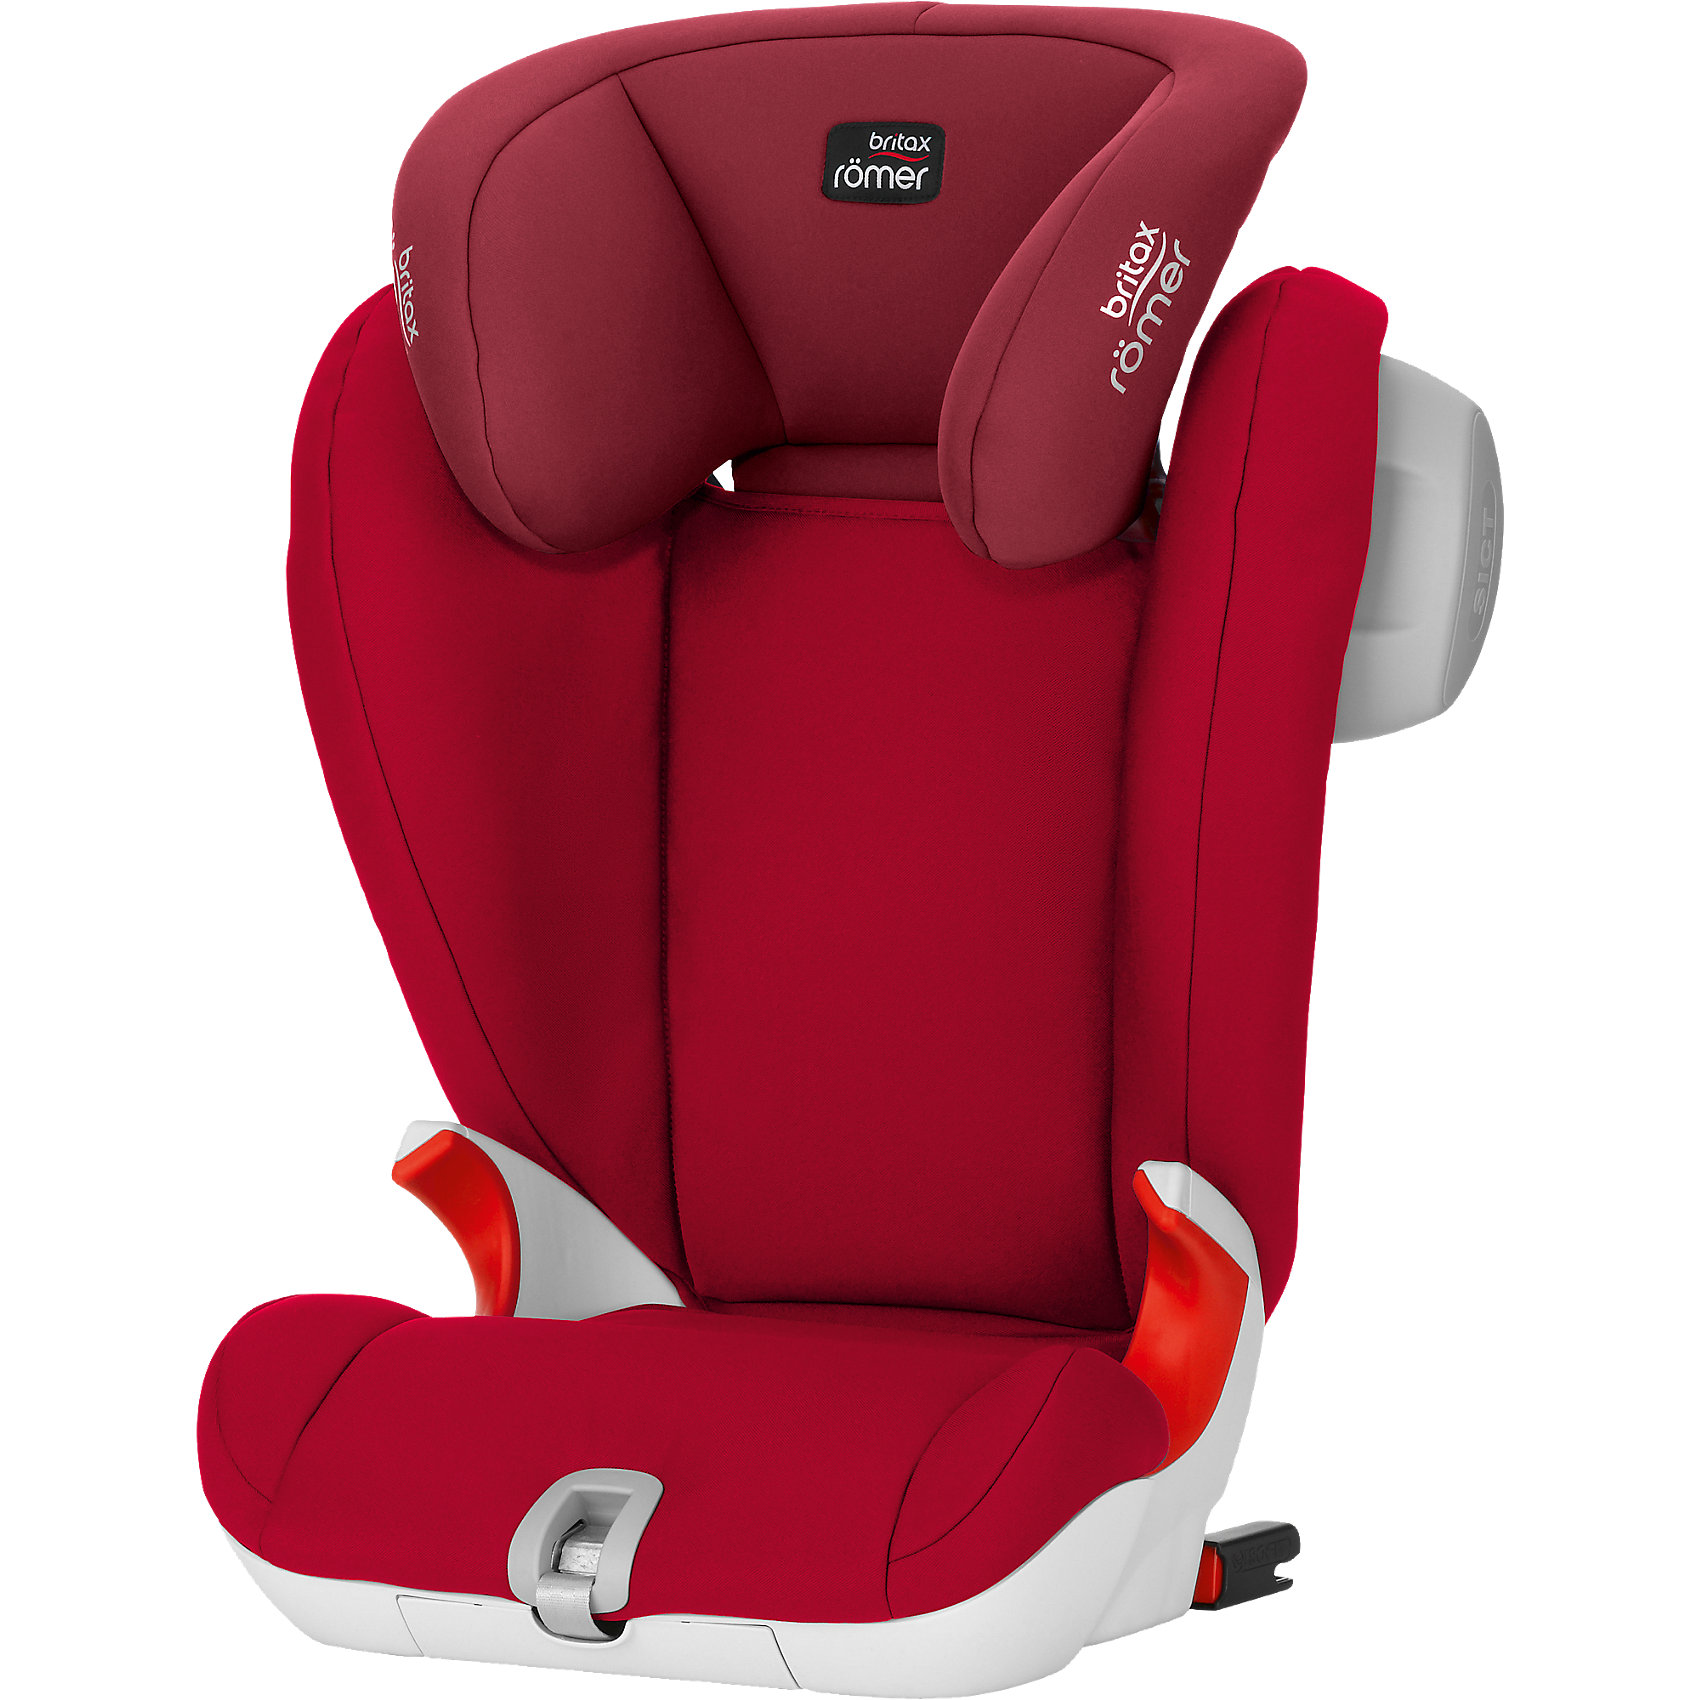 Britax Römer Автокресло KIDFIX SL SICT, 15-36 кг., Britax Roemer, Flame Red цены онлайн